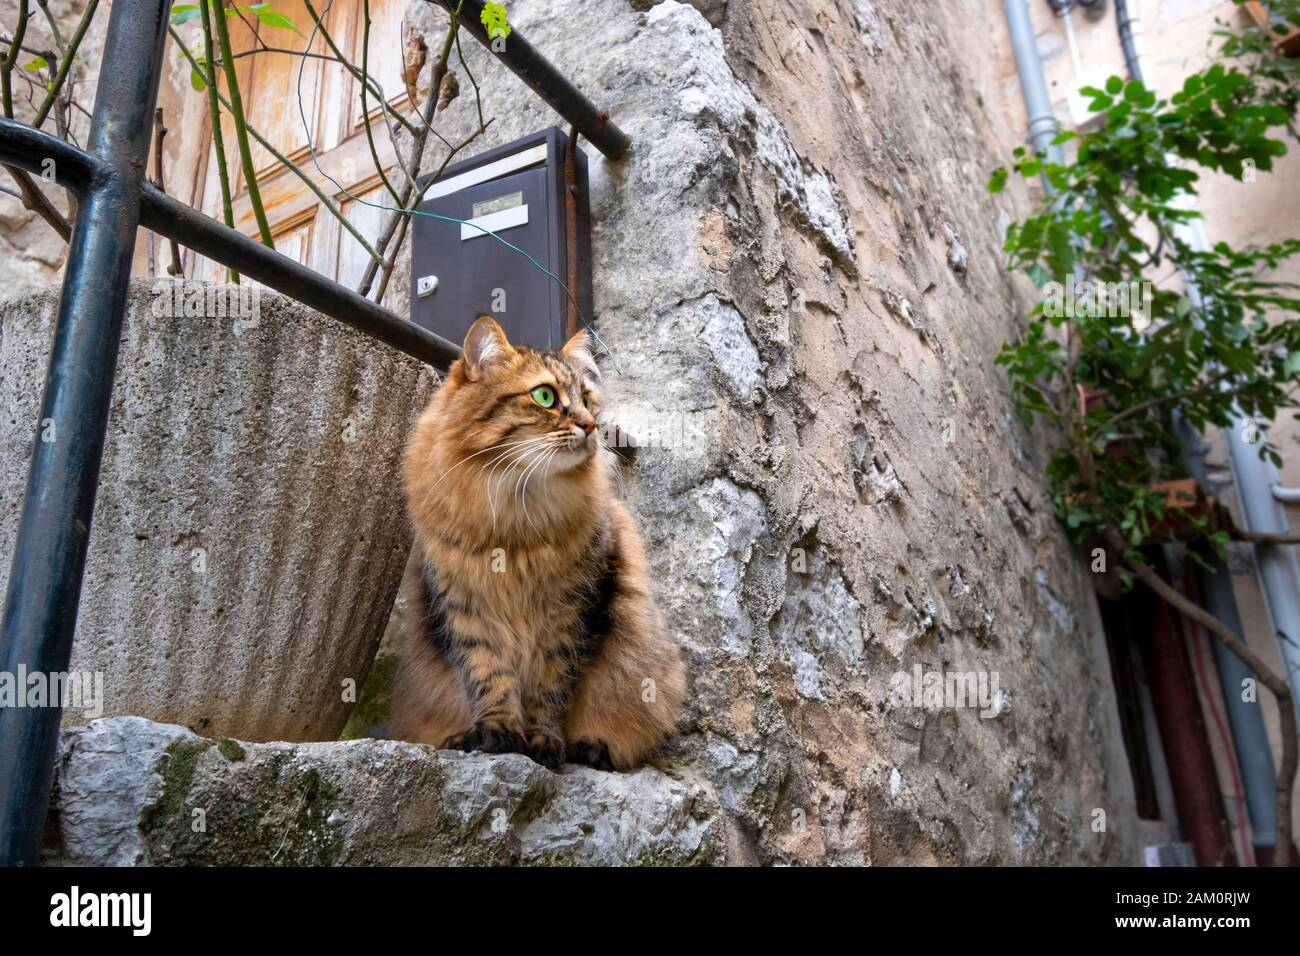 A beautiful long haired tabby watches cautiously from the doorstep of a medieval home in the village of Gourdon, France. Stock Photo